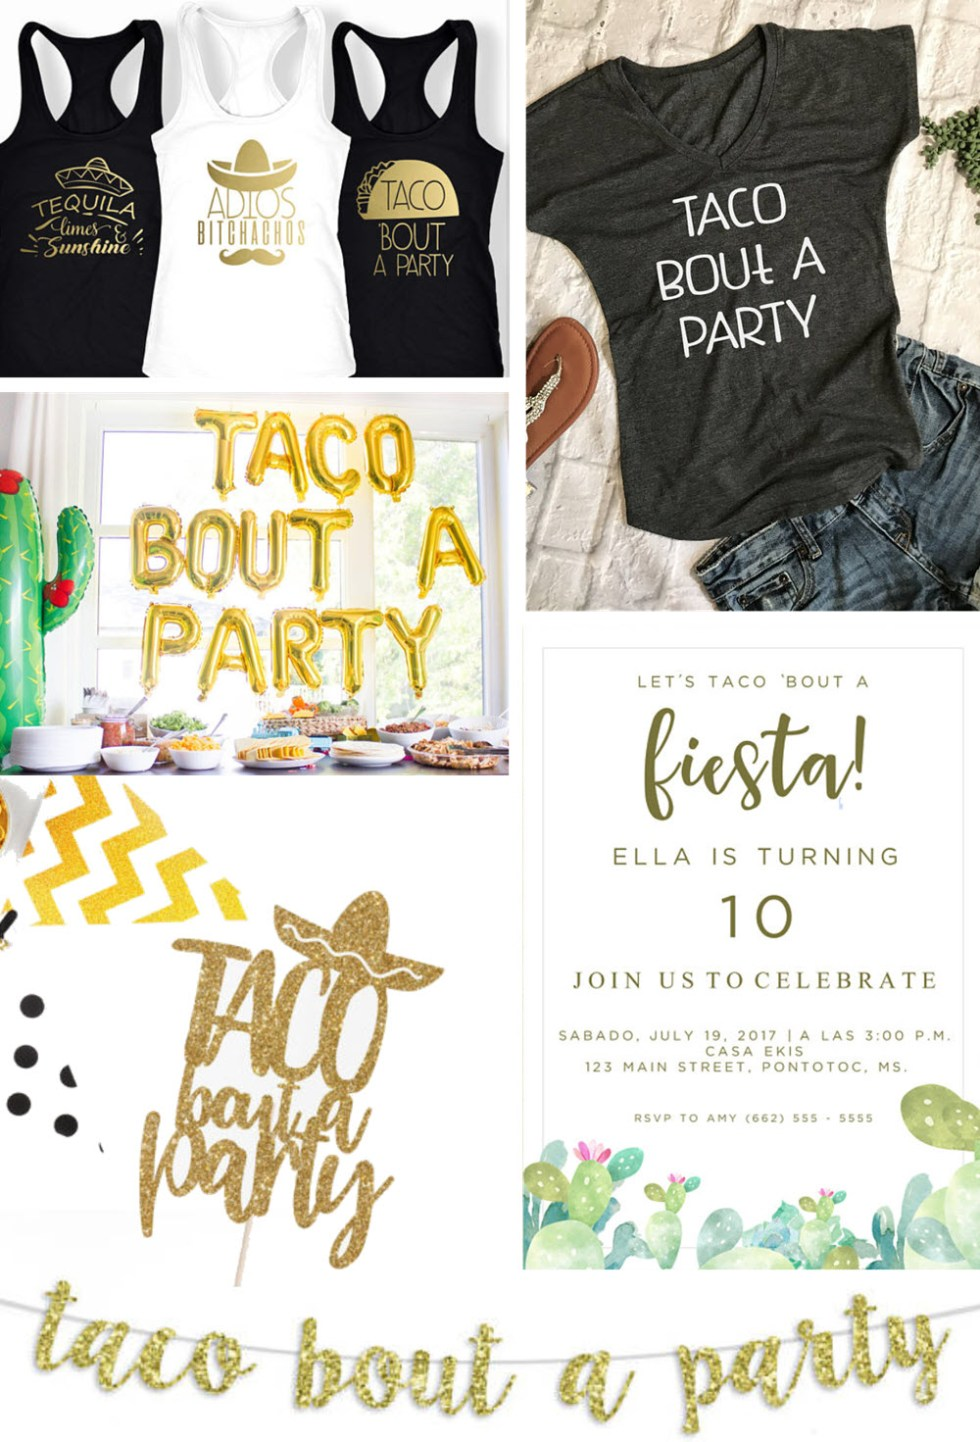 Cinco de Mayo Decorations Ideas. Cinco de Mayo Decorations Ideas